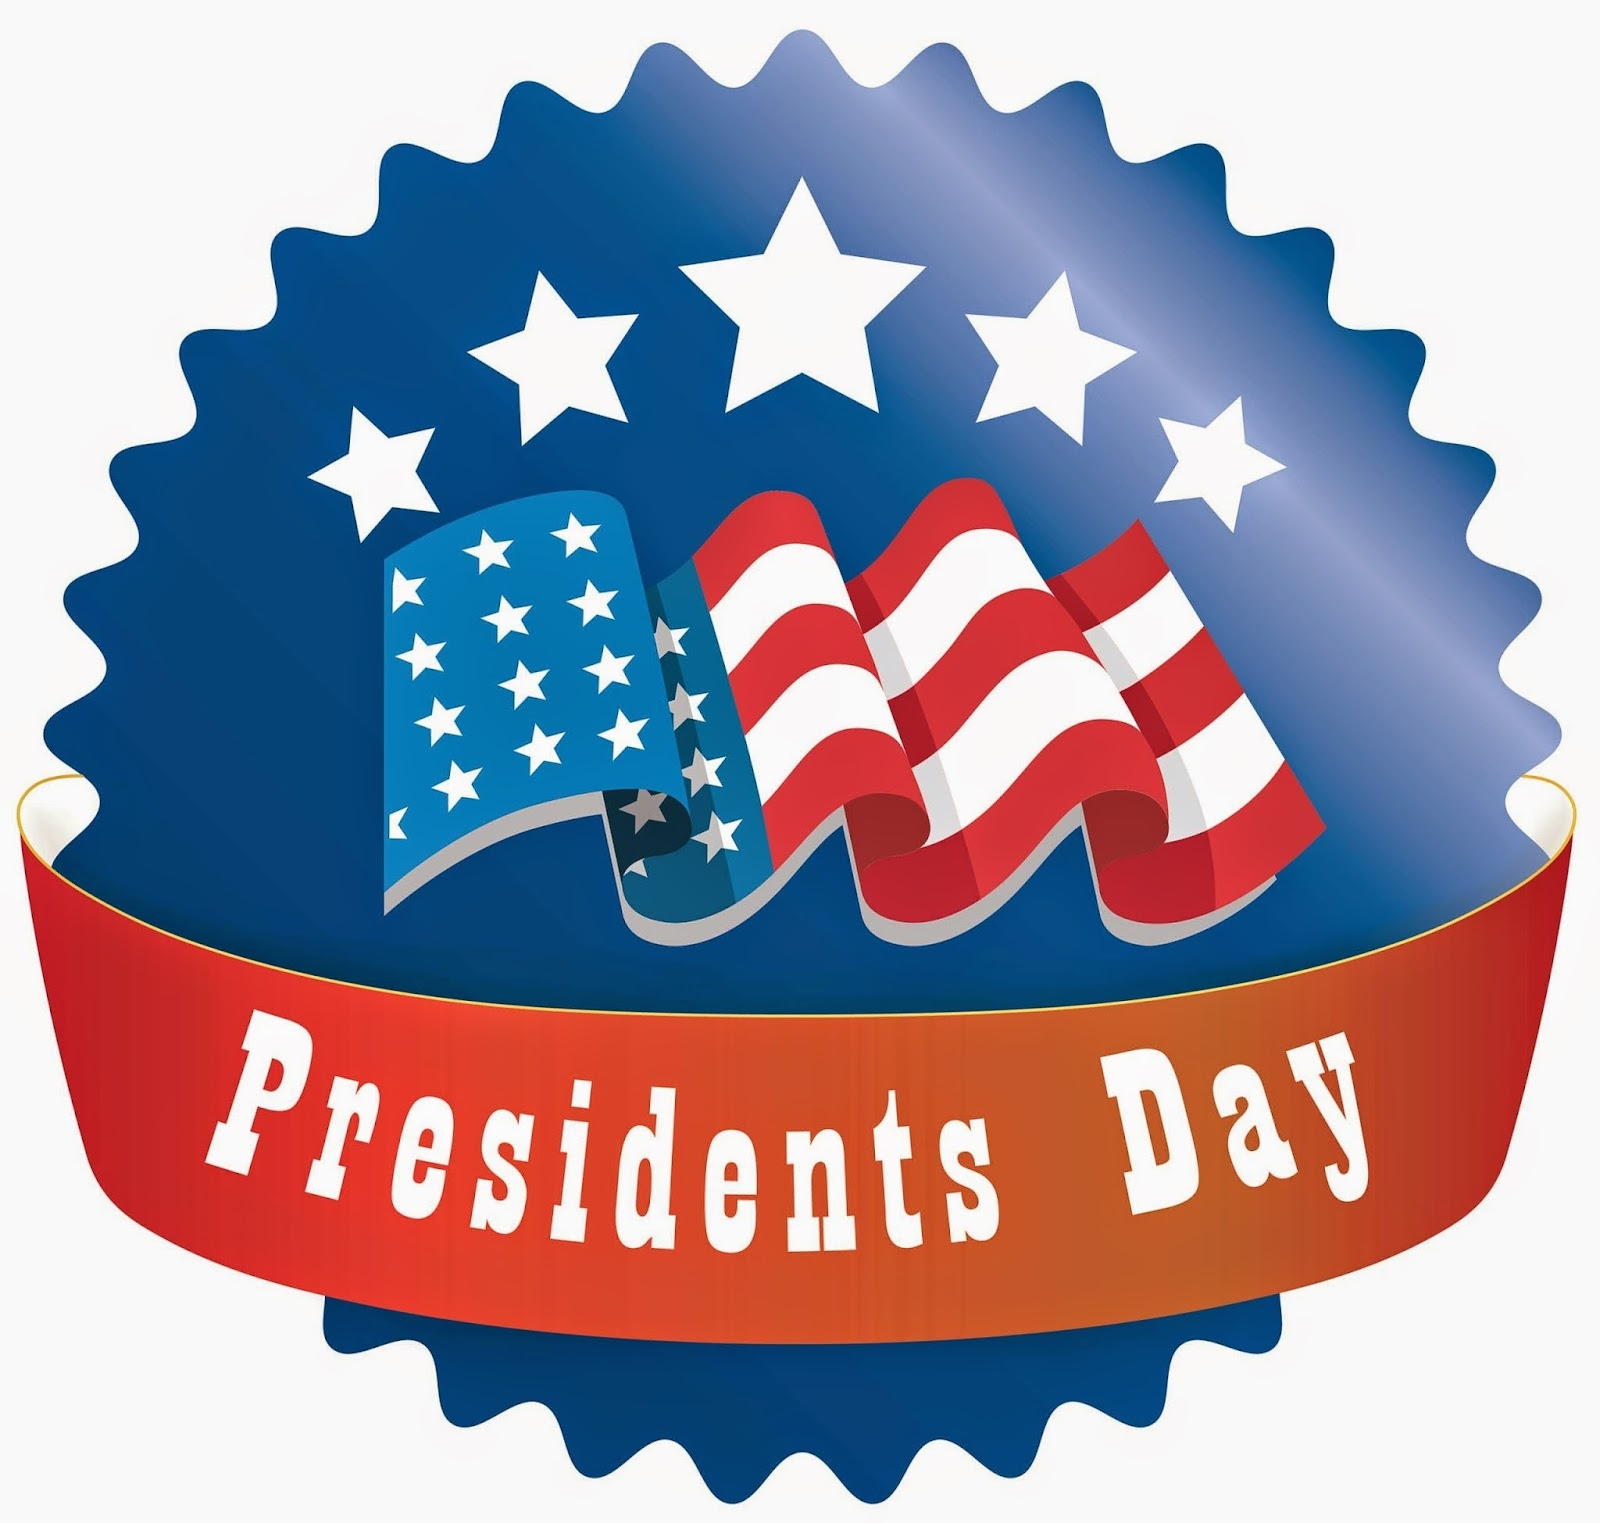 2018 clipart presidents day. New gallery digital collection